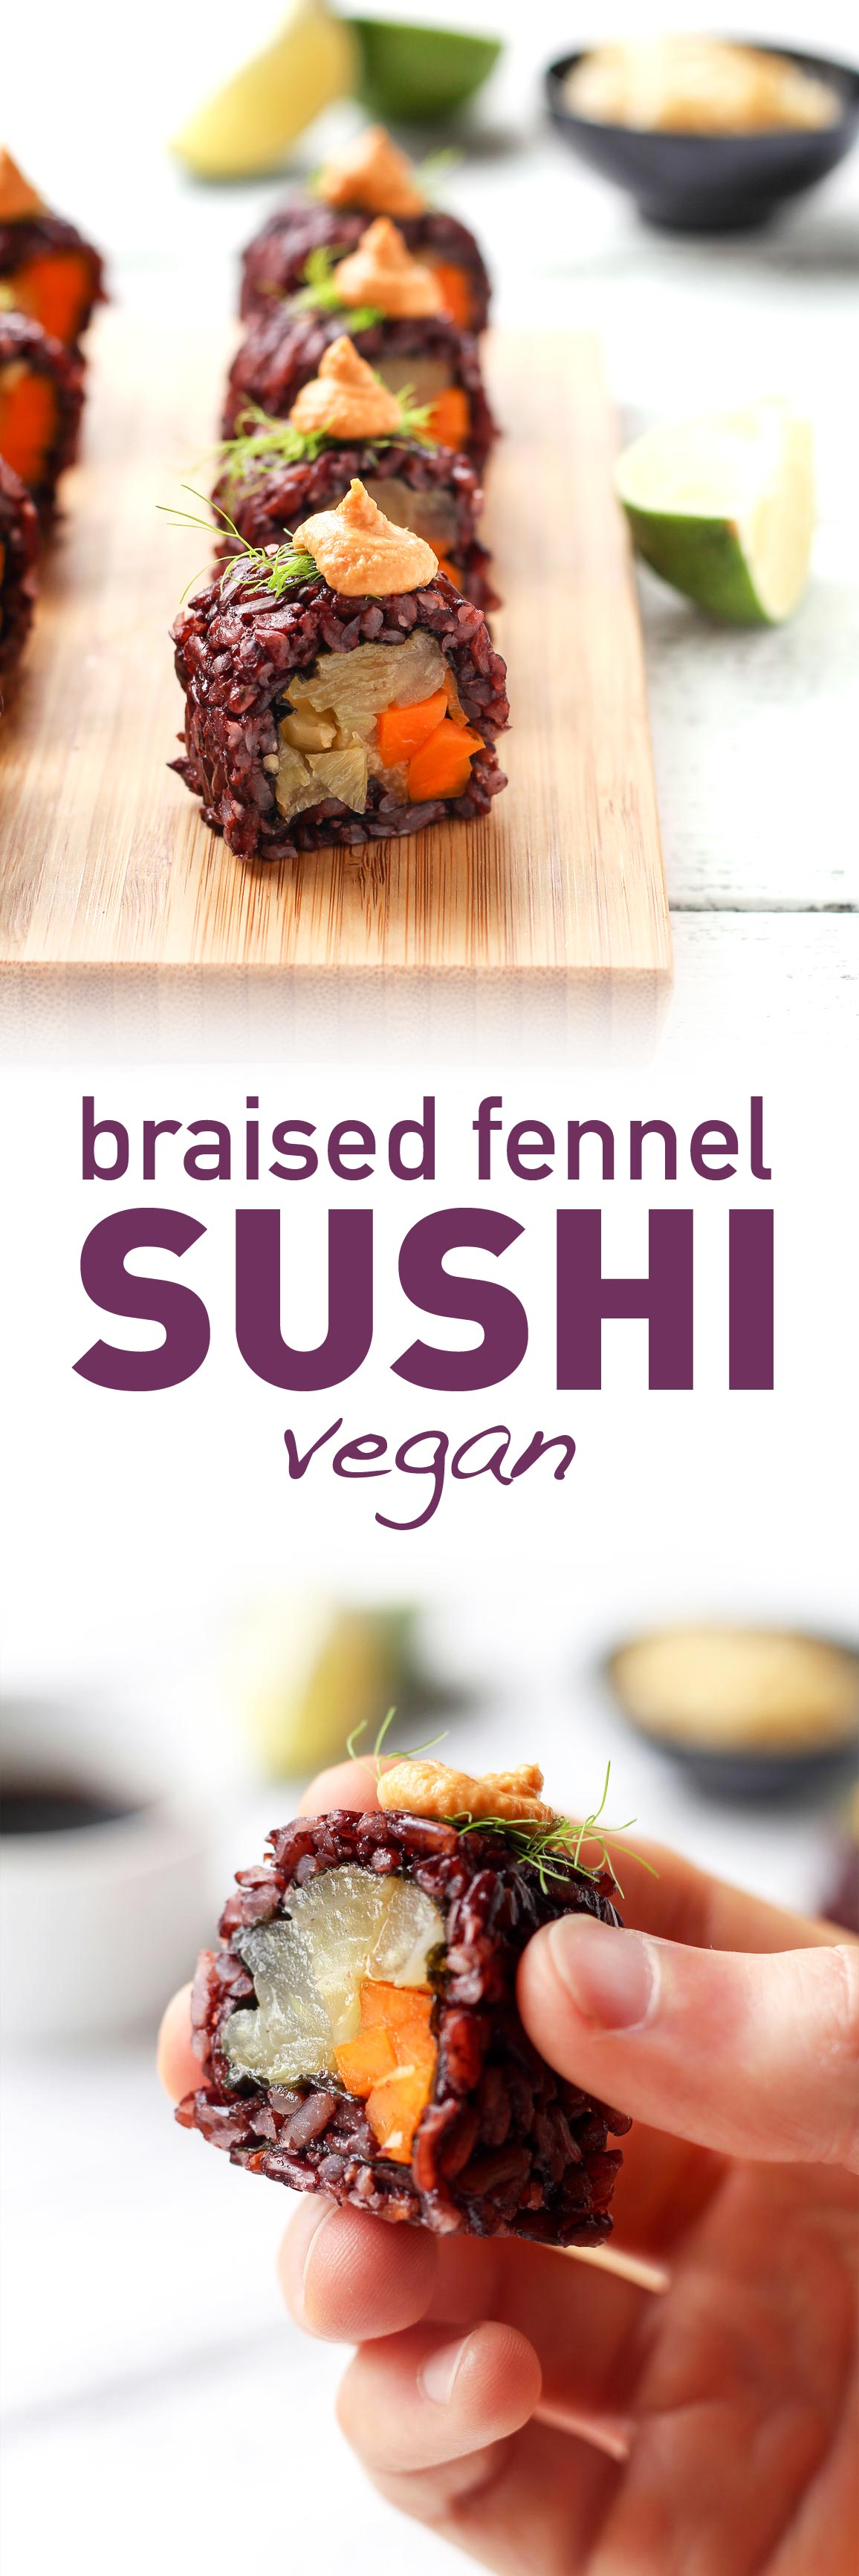 Vegan Braised Fennel Sushi